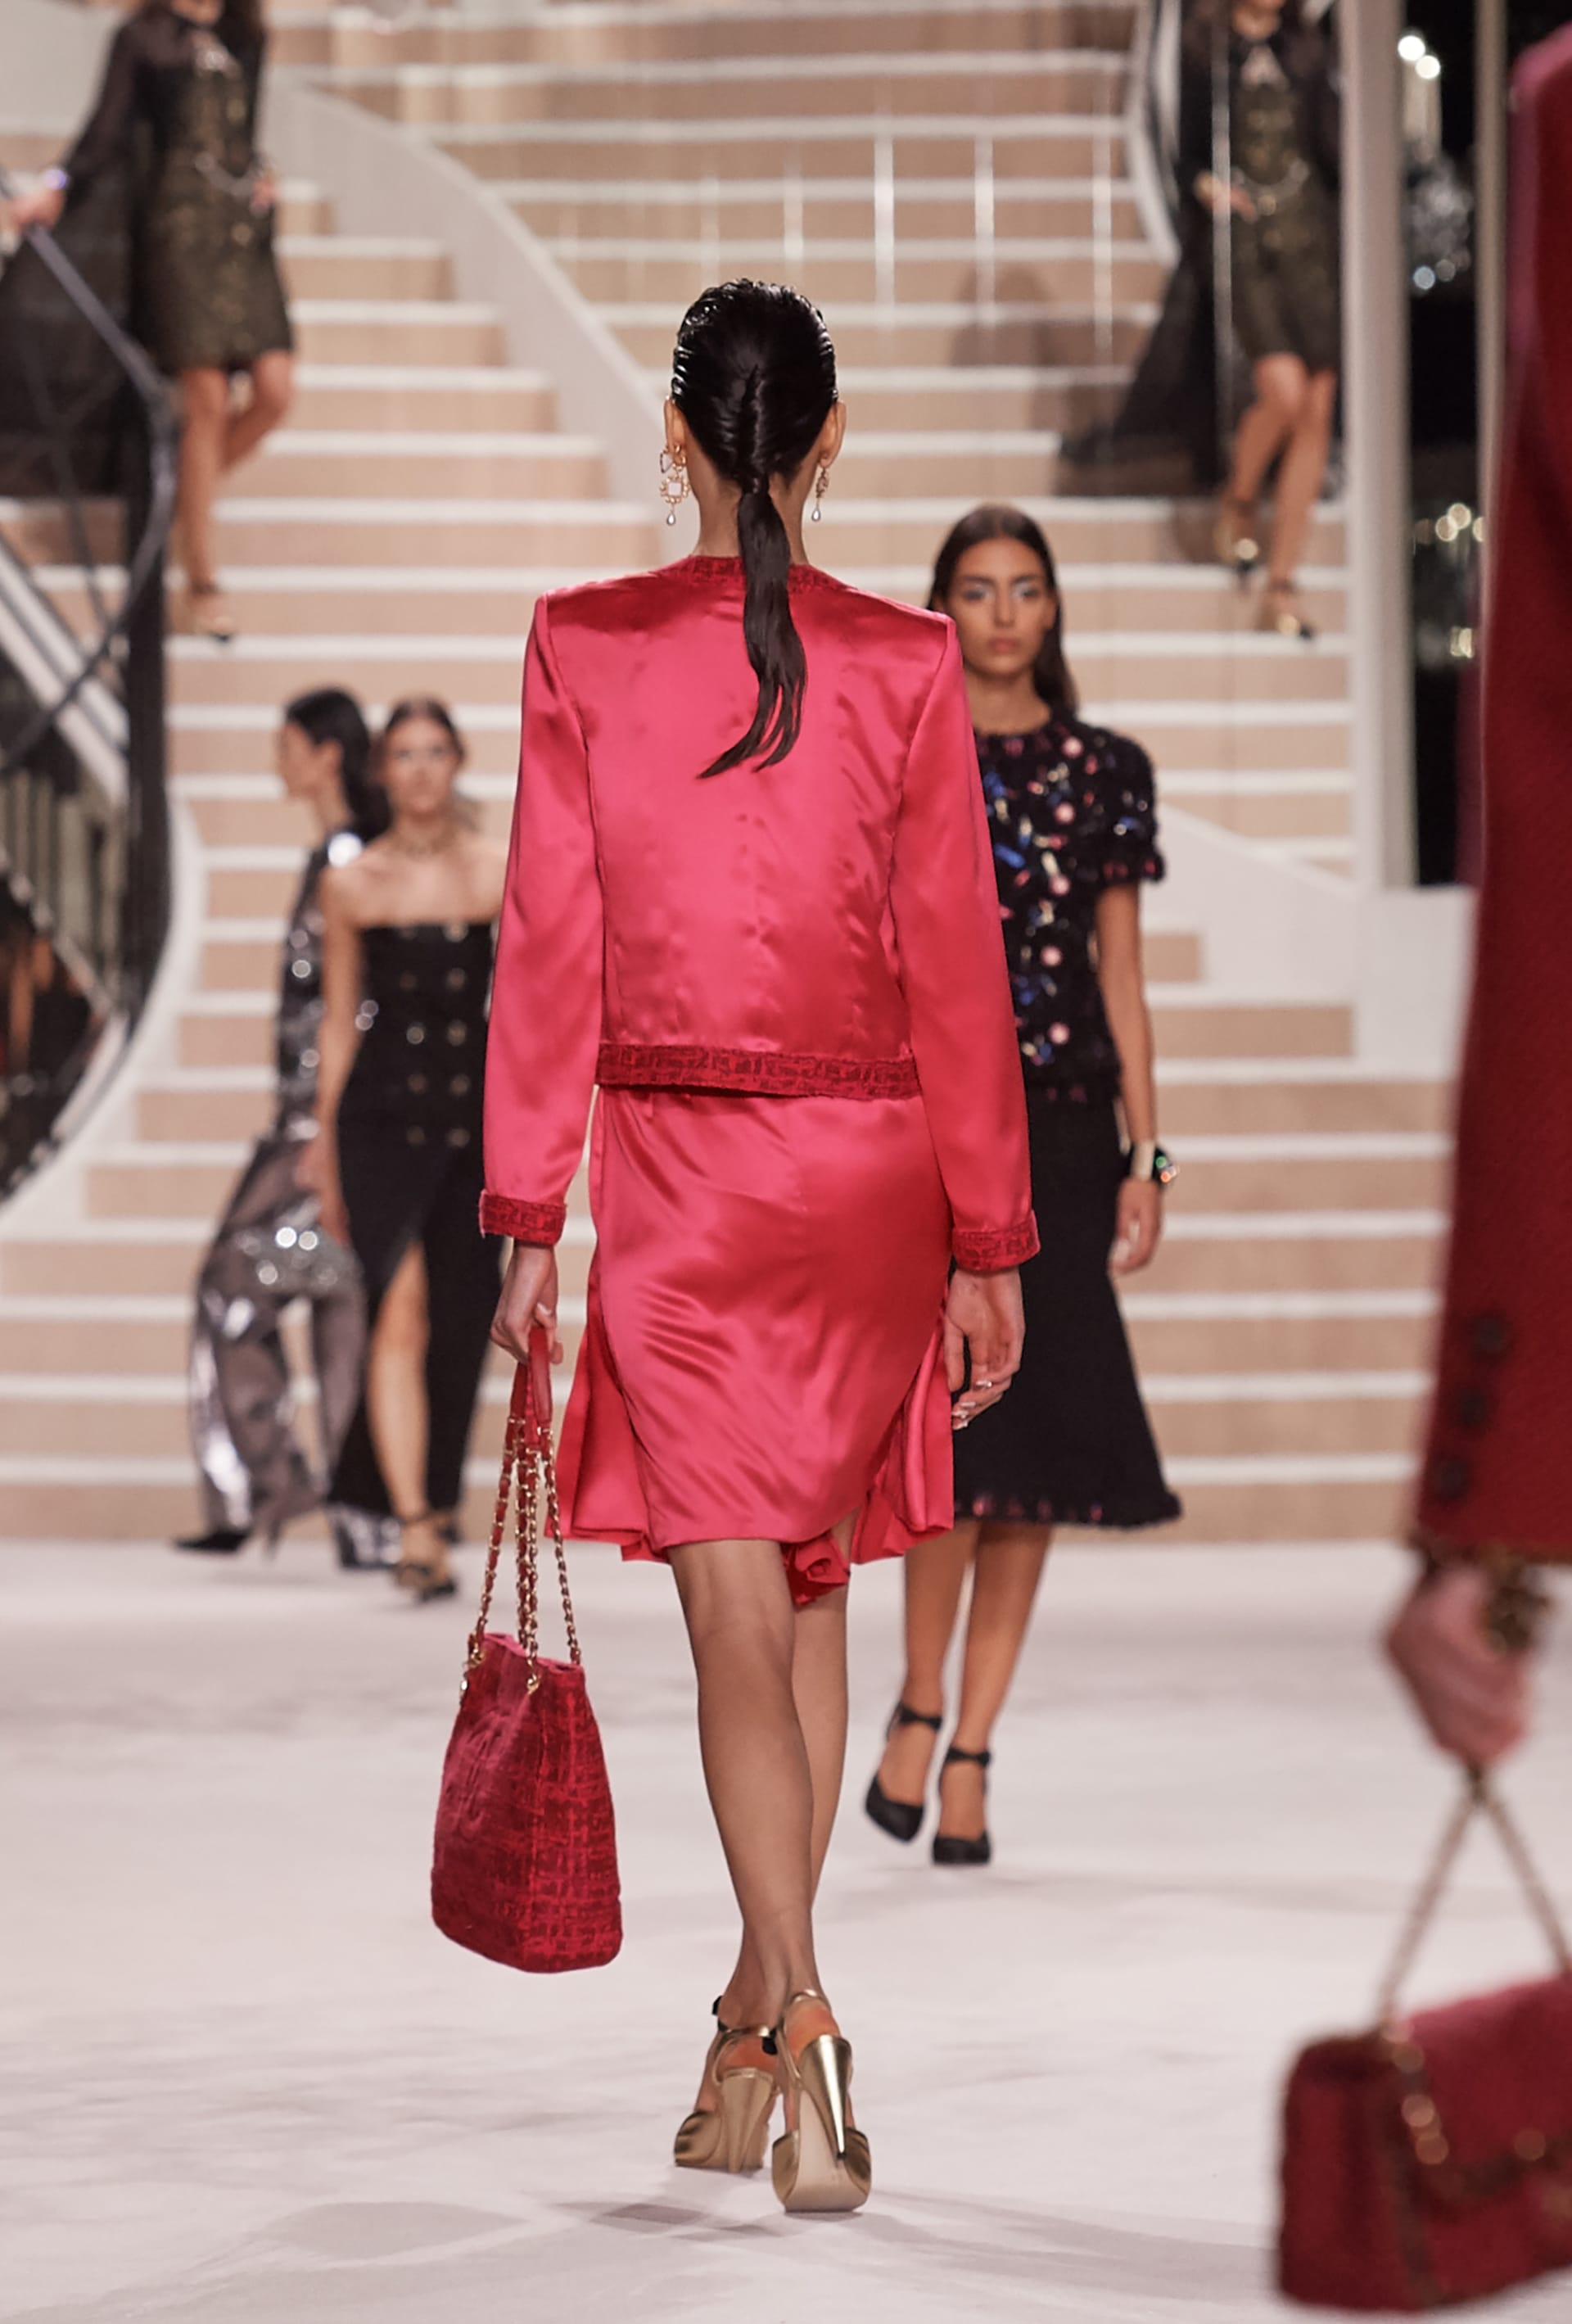 View 4 - Look 33 - Métiers d'Art 2019/20 - see full sized version